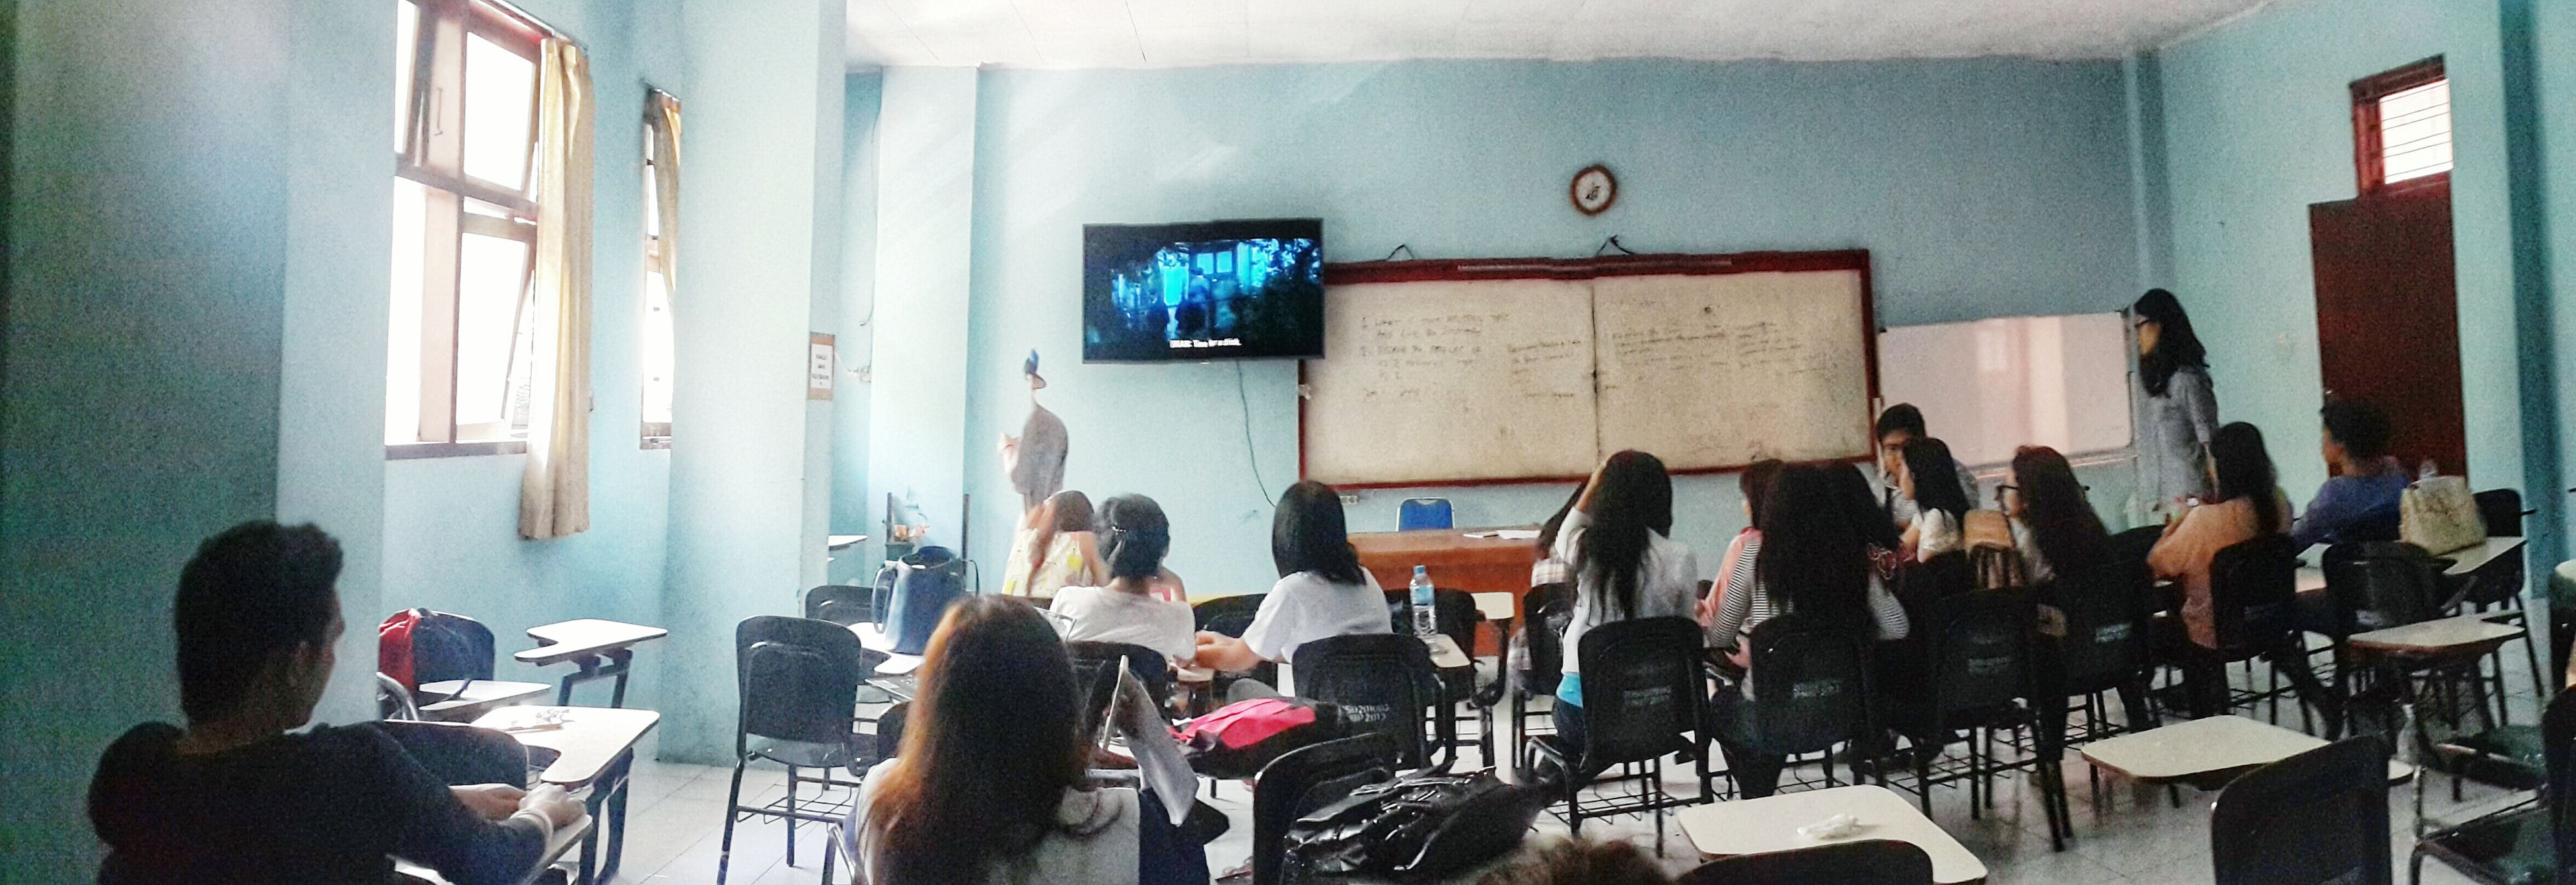 No lecturer means film time. The Theory of Everything 👫👬👭🎬 Nowwatching Classmate Classroom The Theory Of Everything